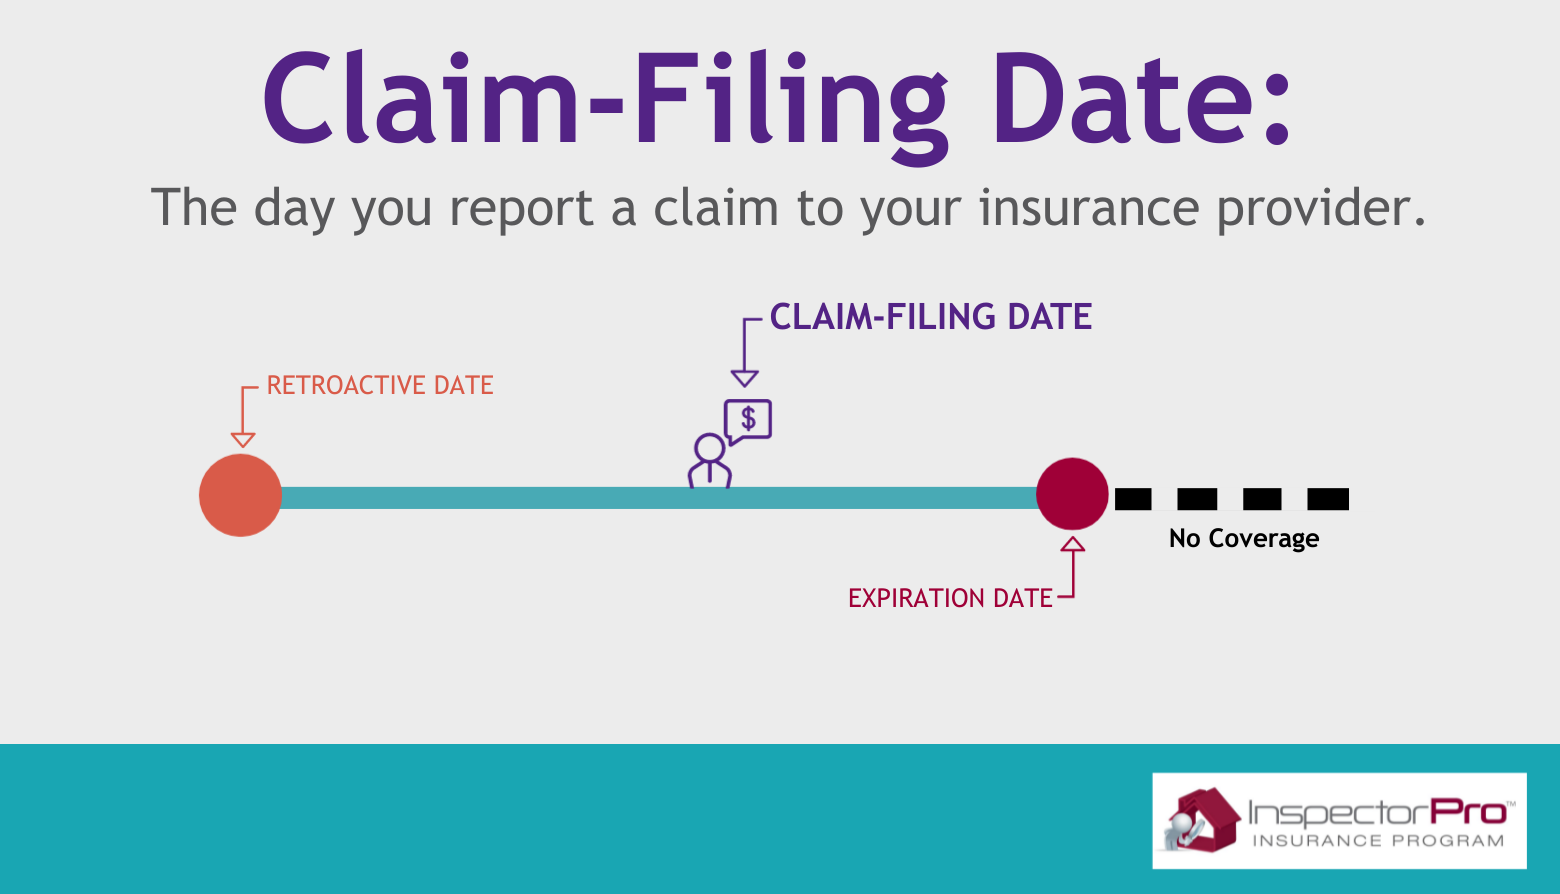 claim-filing date home inspection insurance